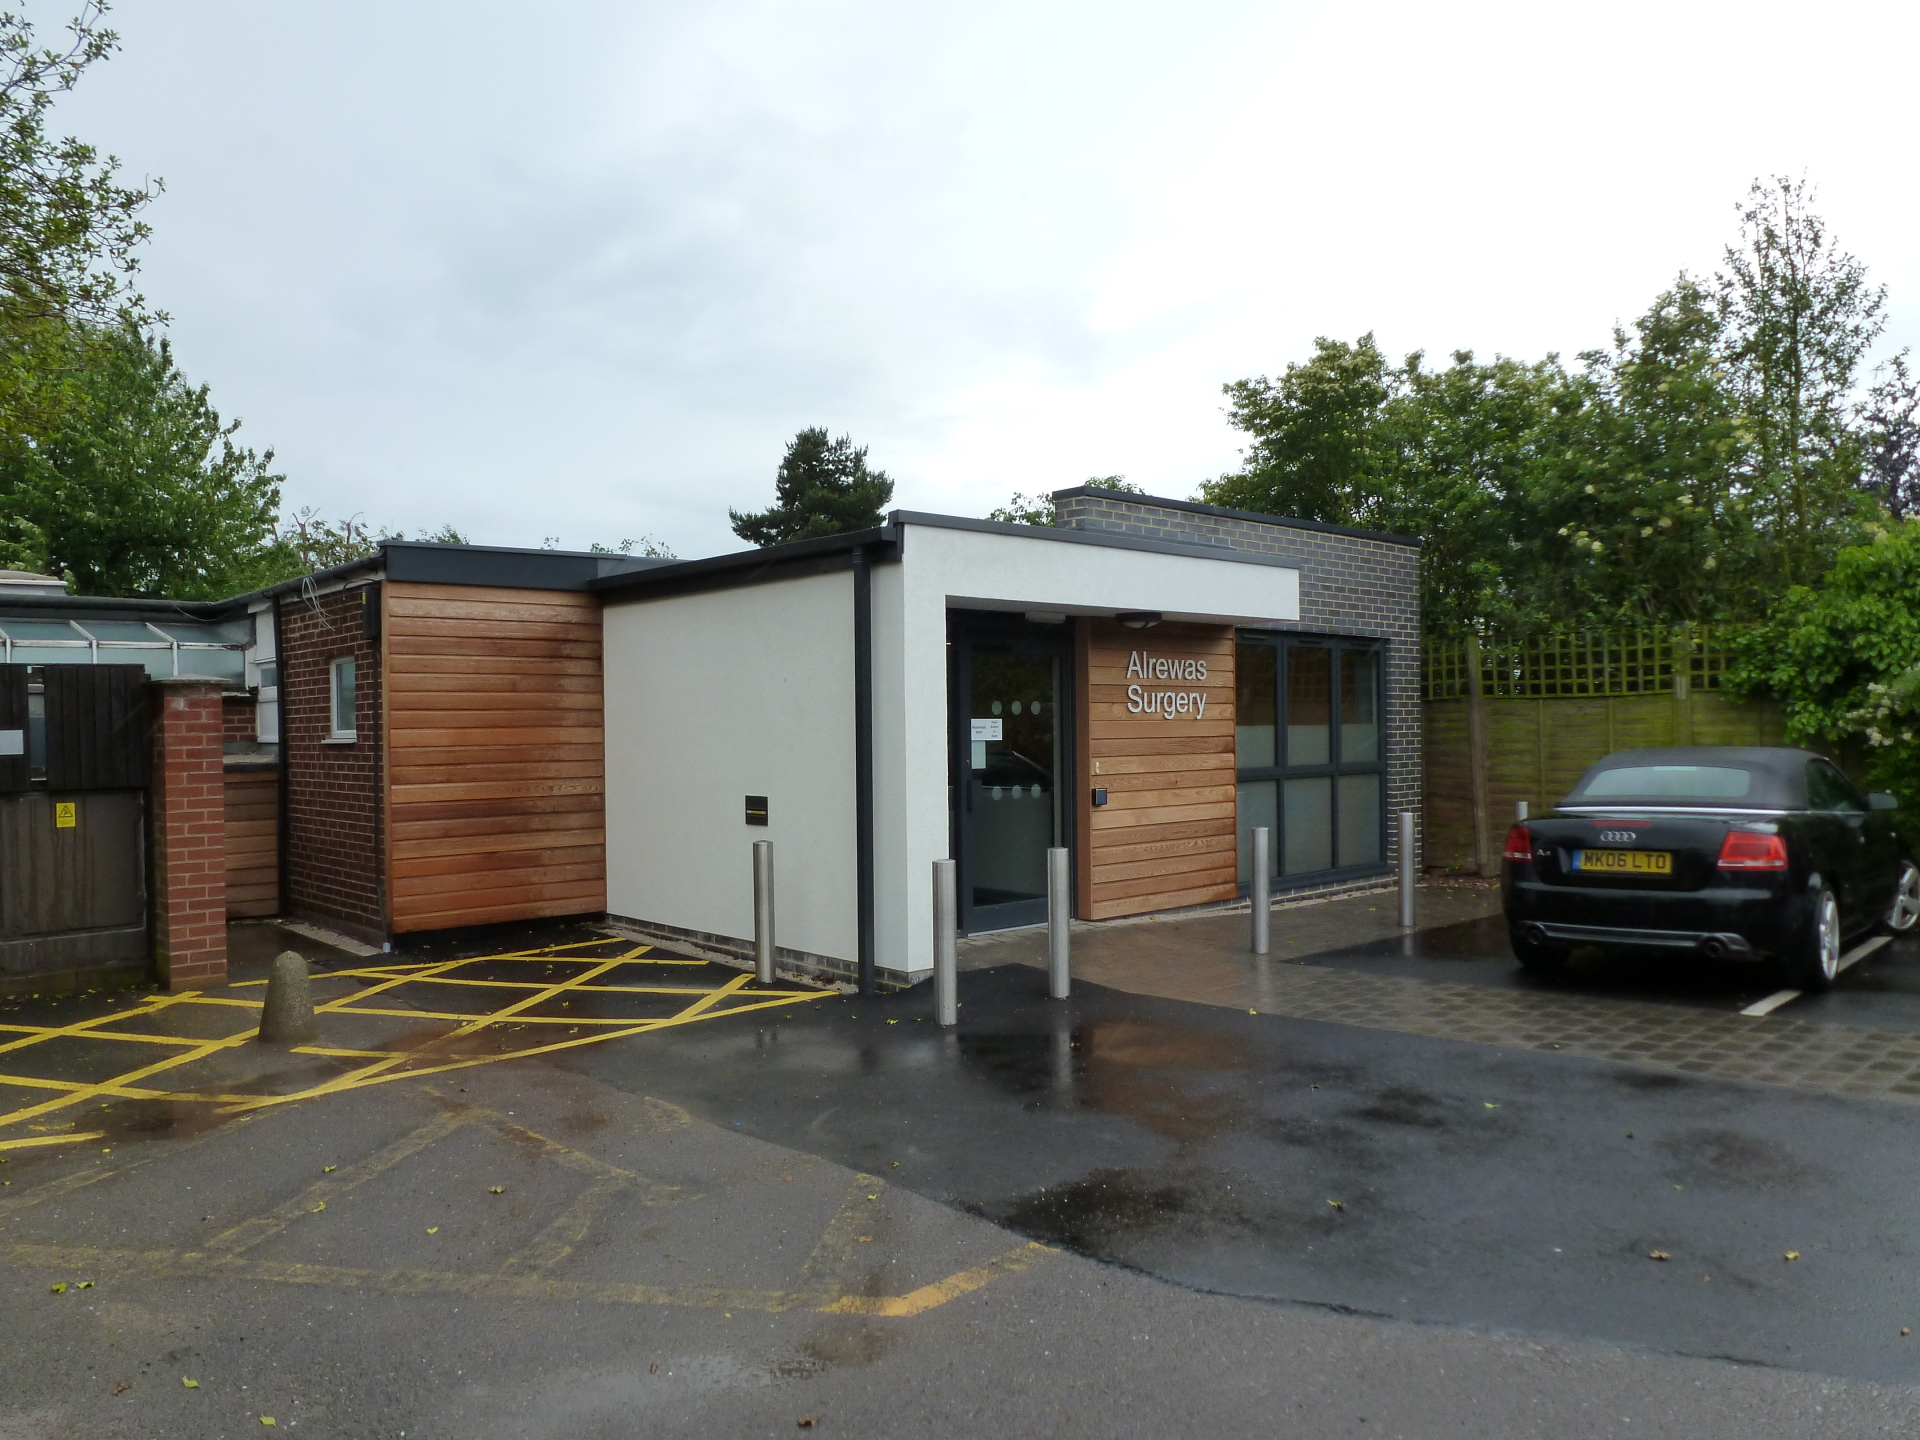 Alrewas Surgery - Staffordshire